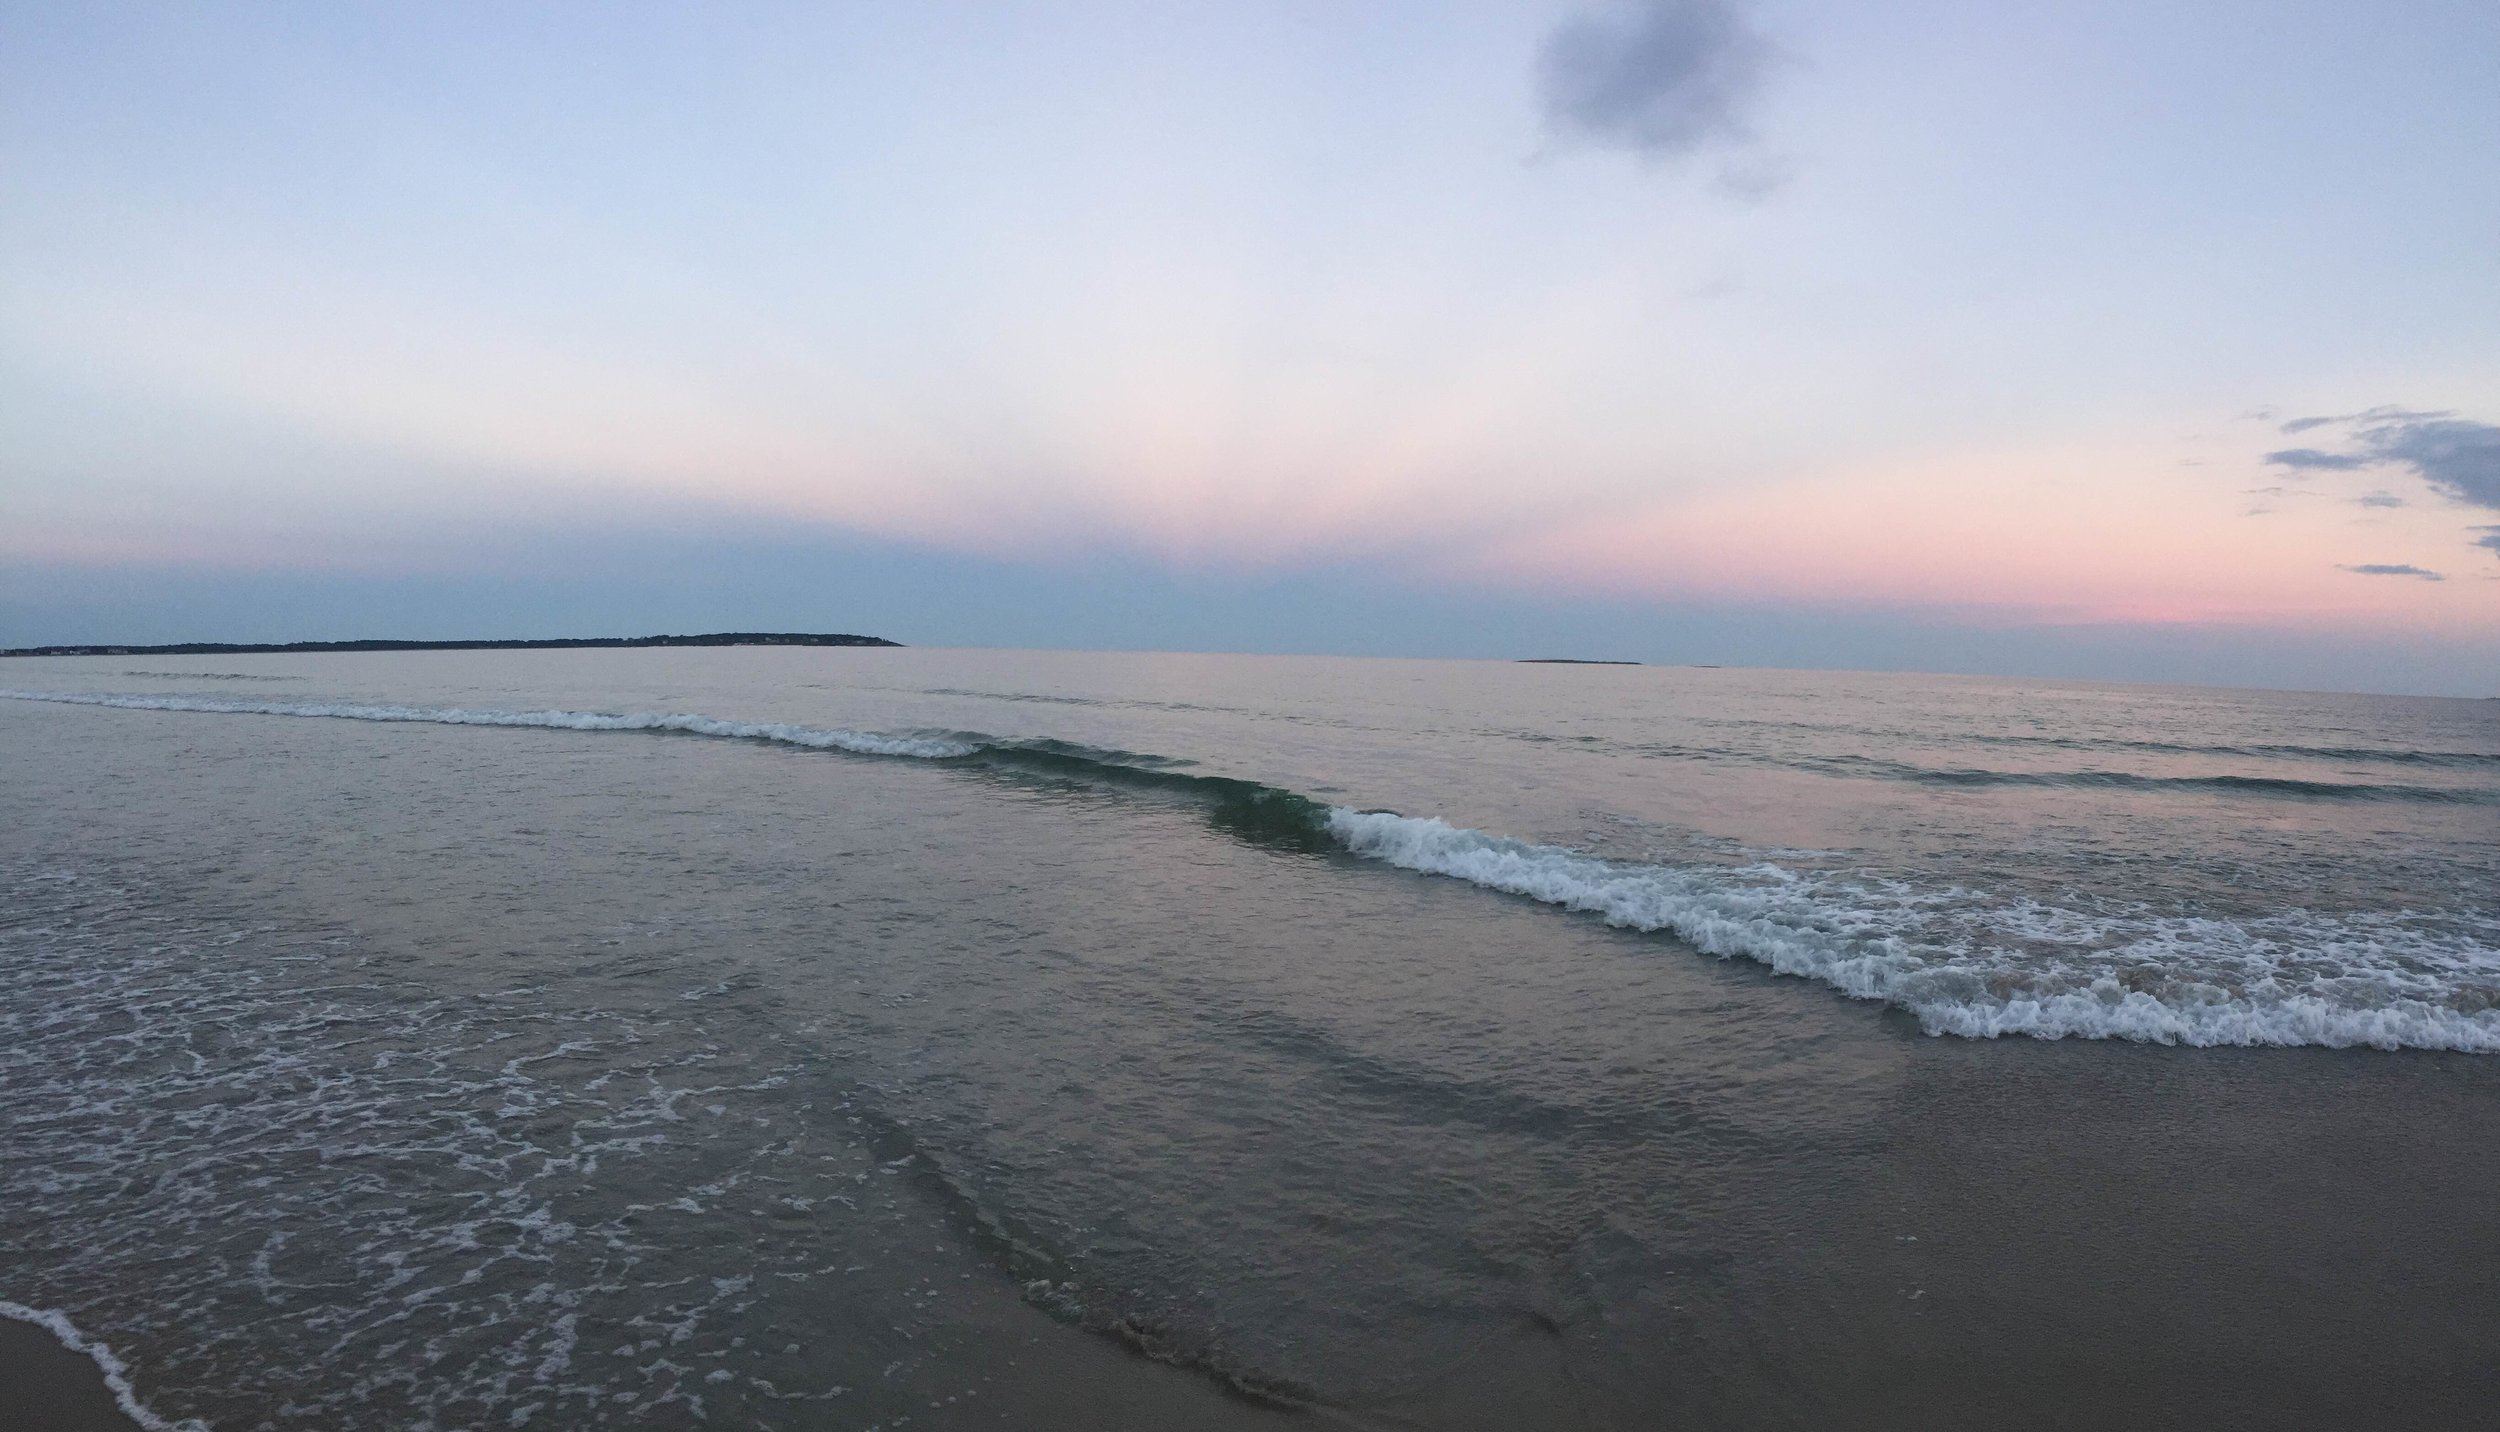 Looking out over Saco Bay at Twilight.